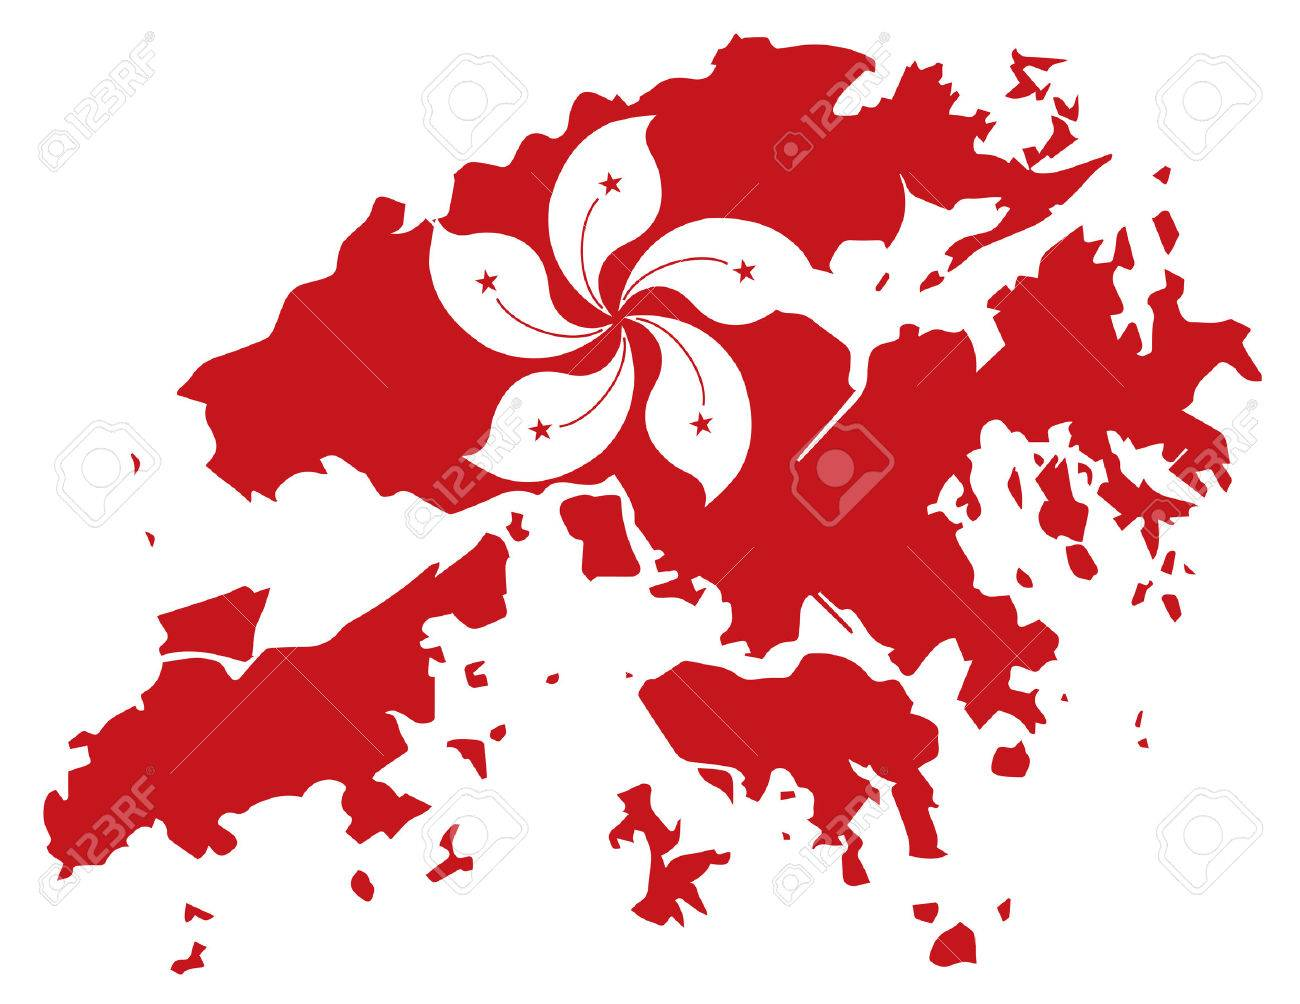 Hong Kong Flag Map Hong Kong Flag In Red Map Outline Silhouette Illustration Royalty